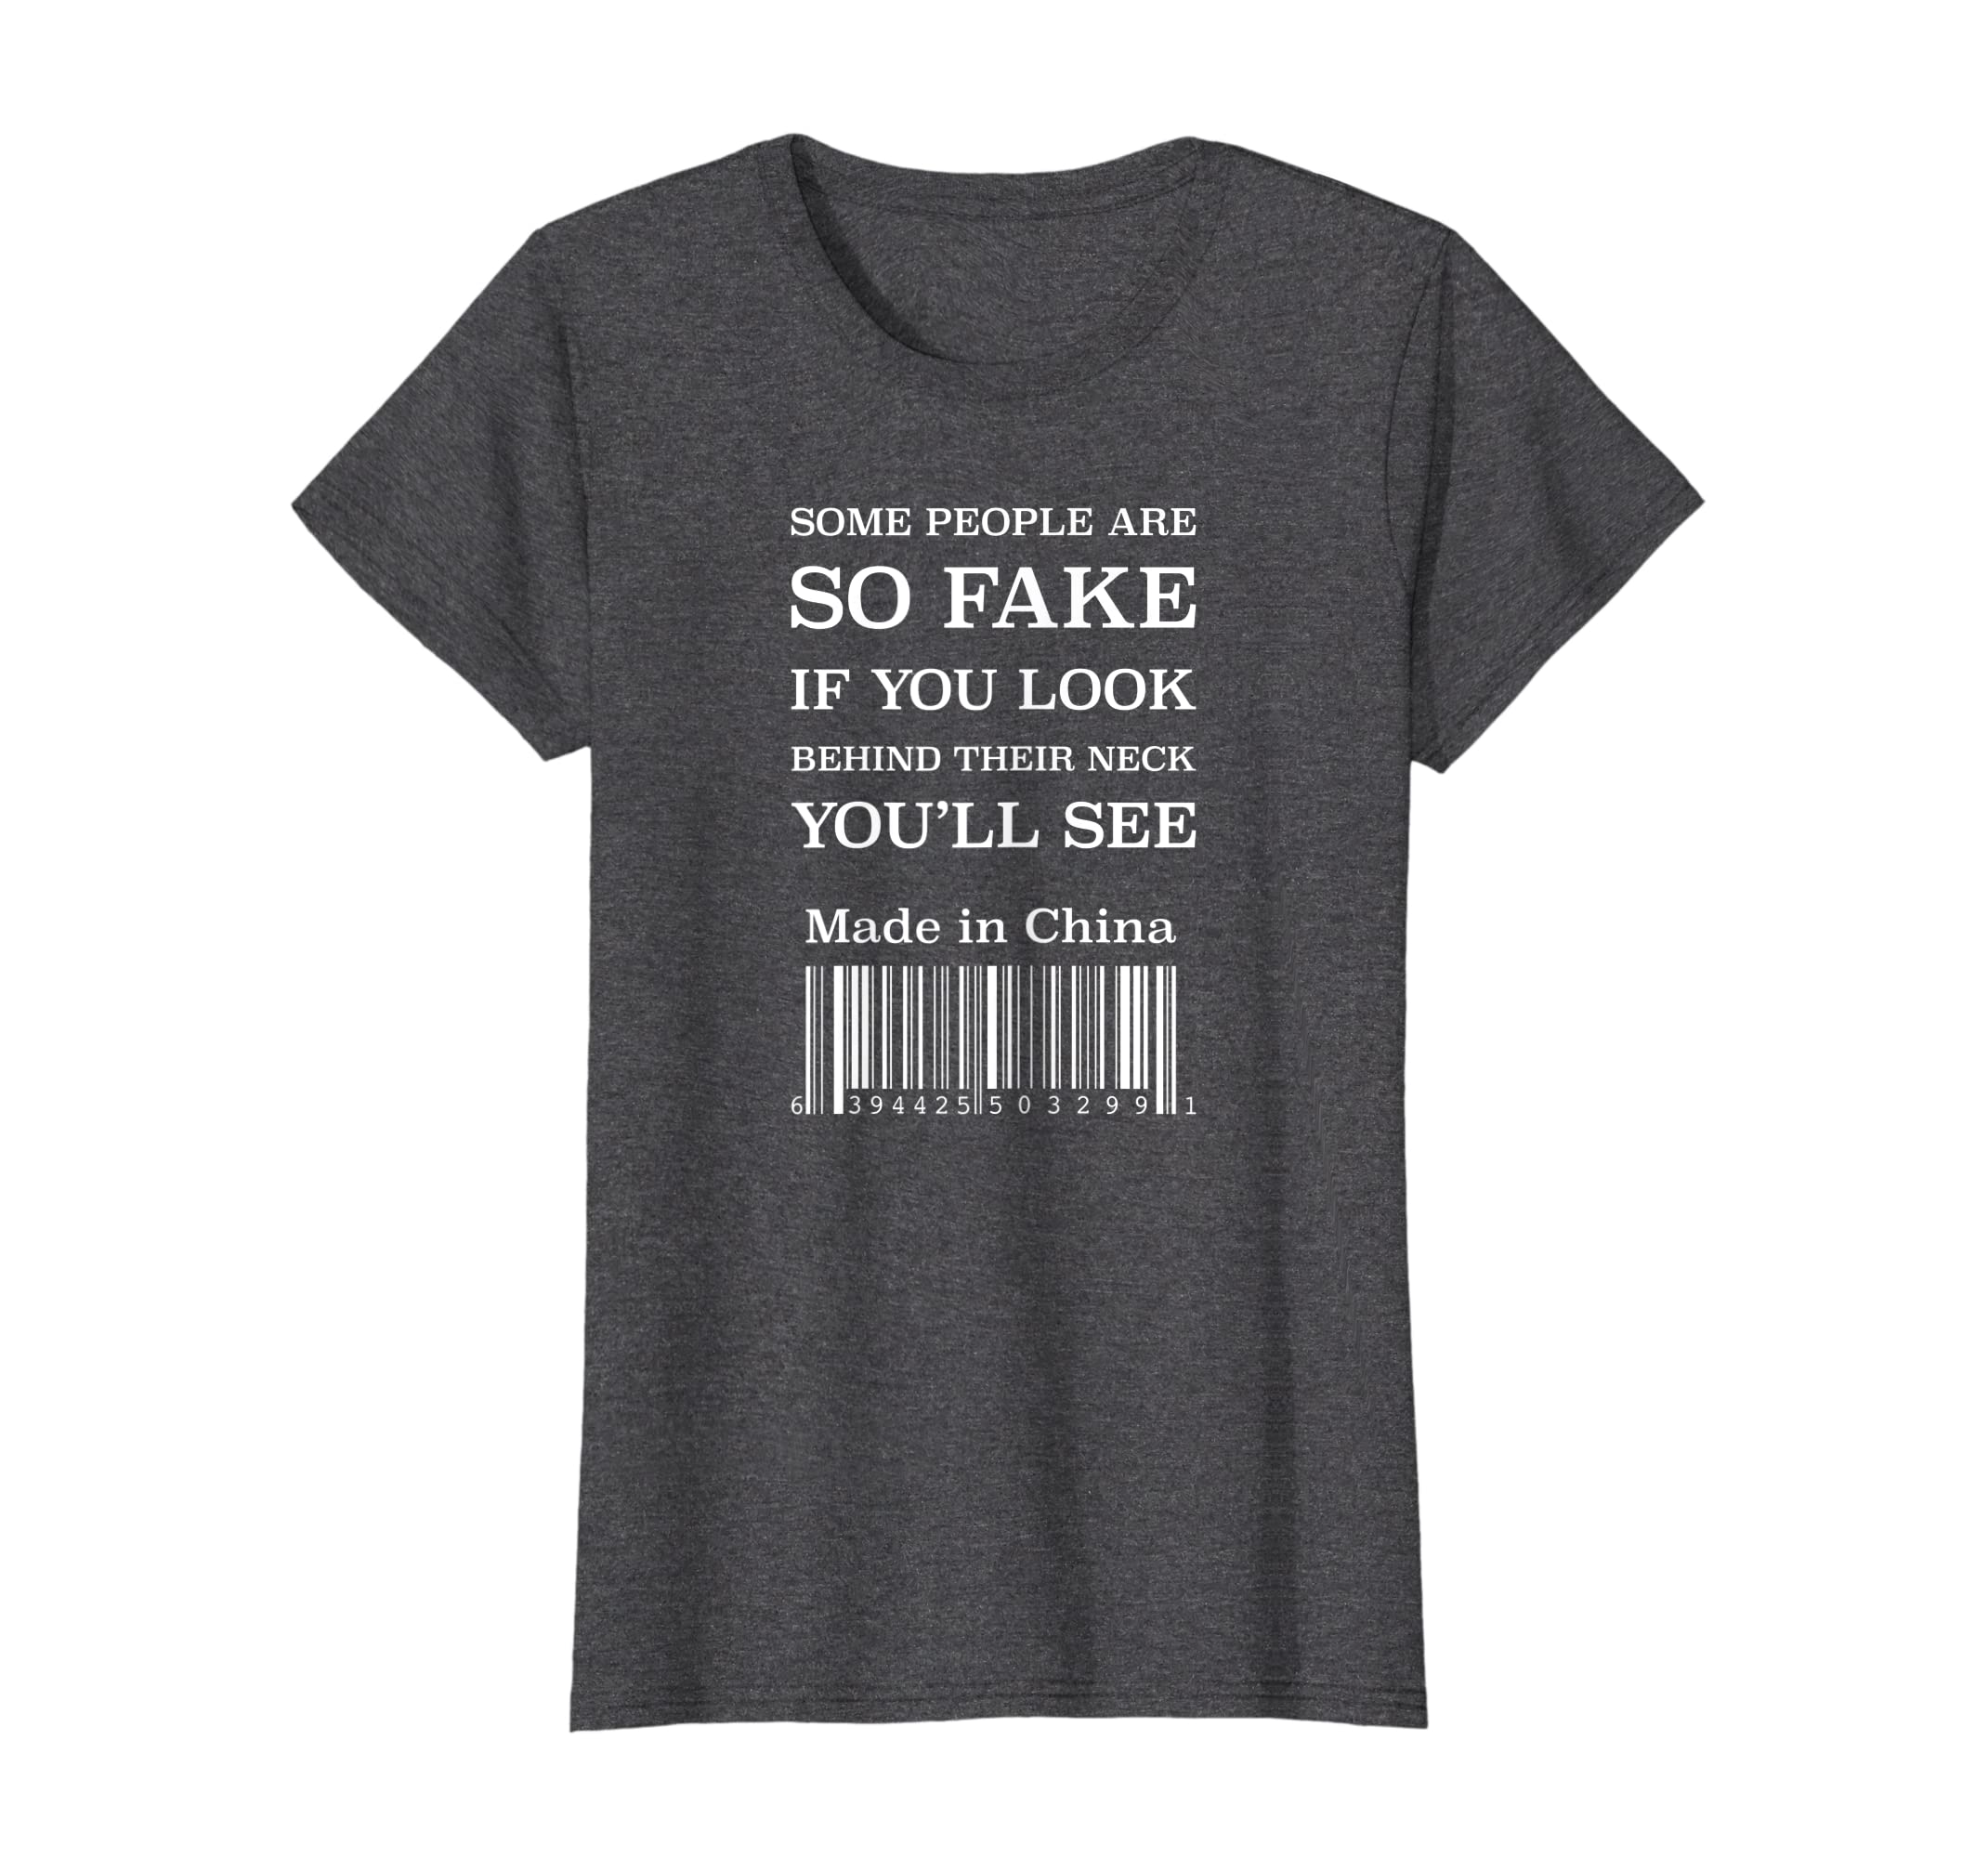 95f8f982 Amazon.com: Funny Graphic Quote T Shirts for Men and Women Shirt M0DEST:  Clothing